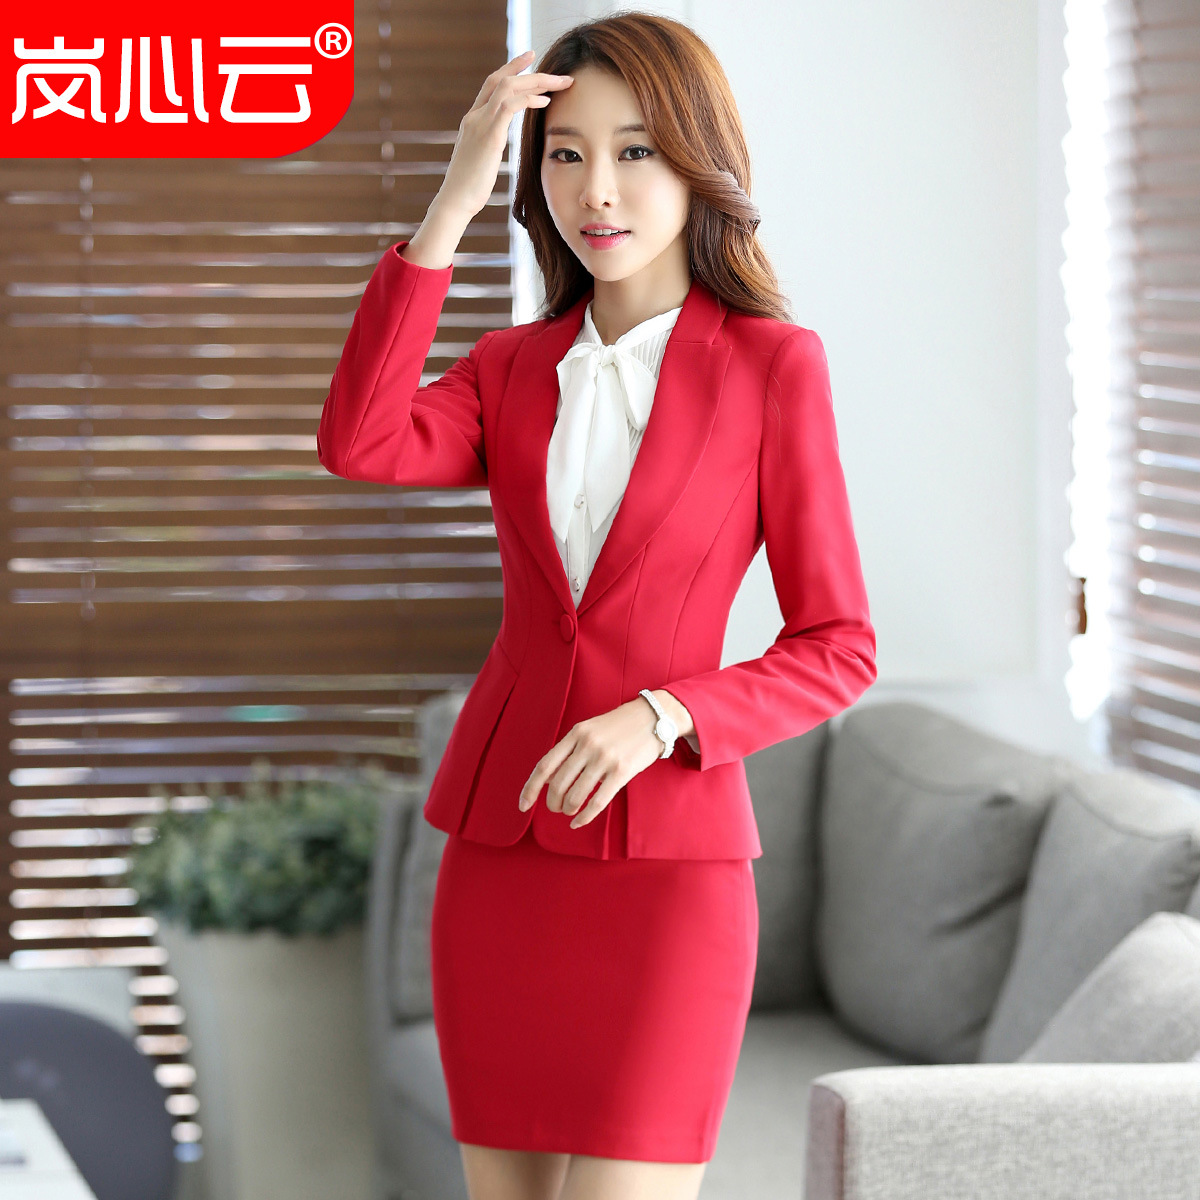 2019 New Products Ol Wear WOMEN'S Suit Autumn And Winter Leggings Long Sleeve Formal Wear Interview Hotel Manager Women's Work C